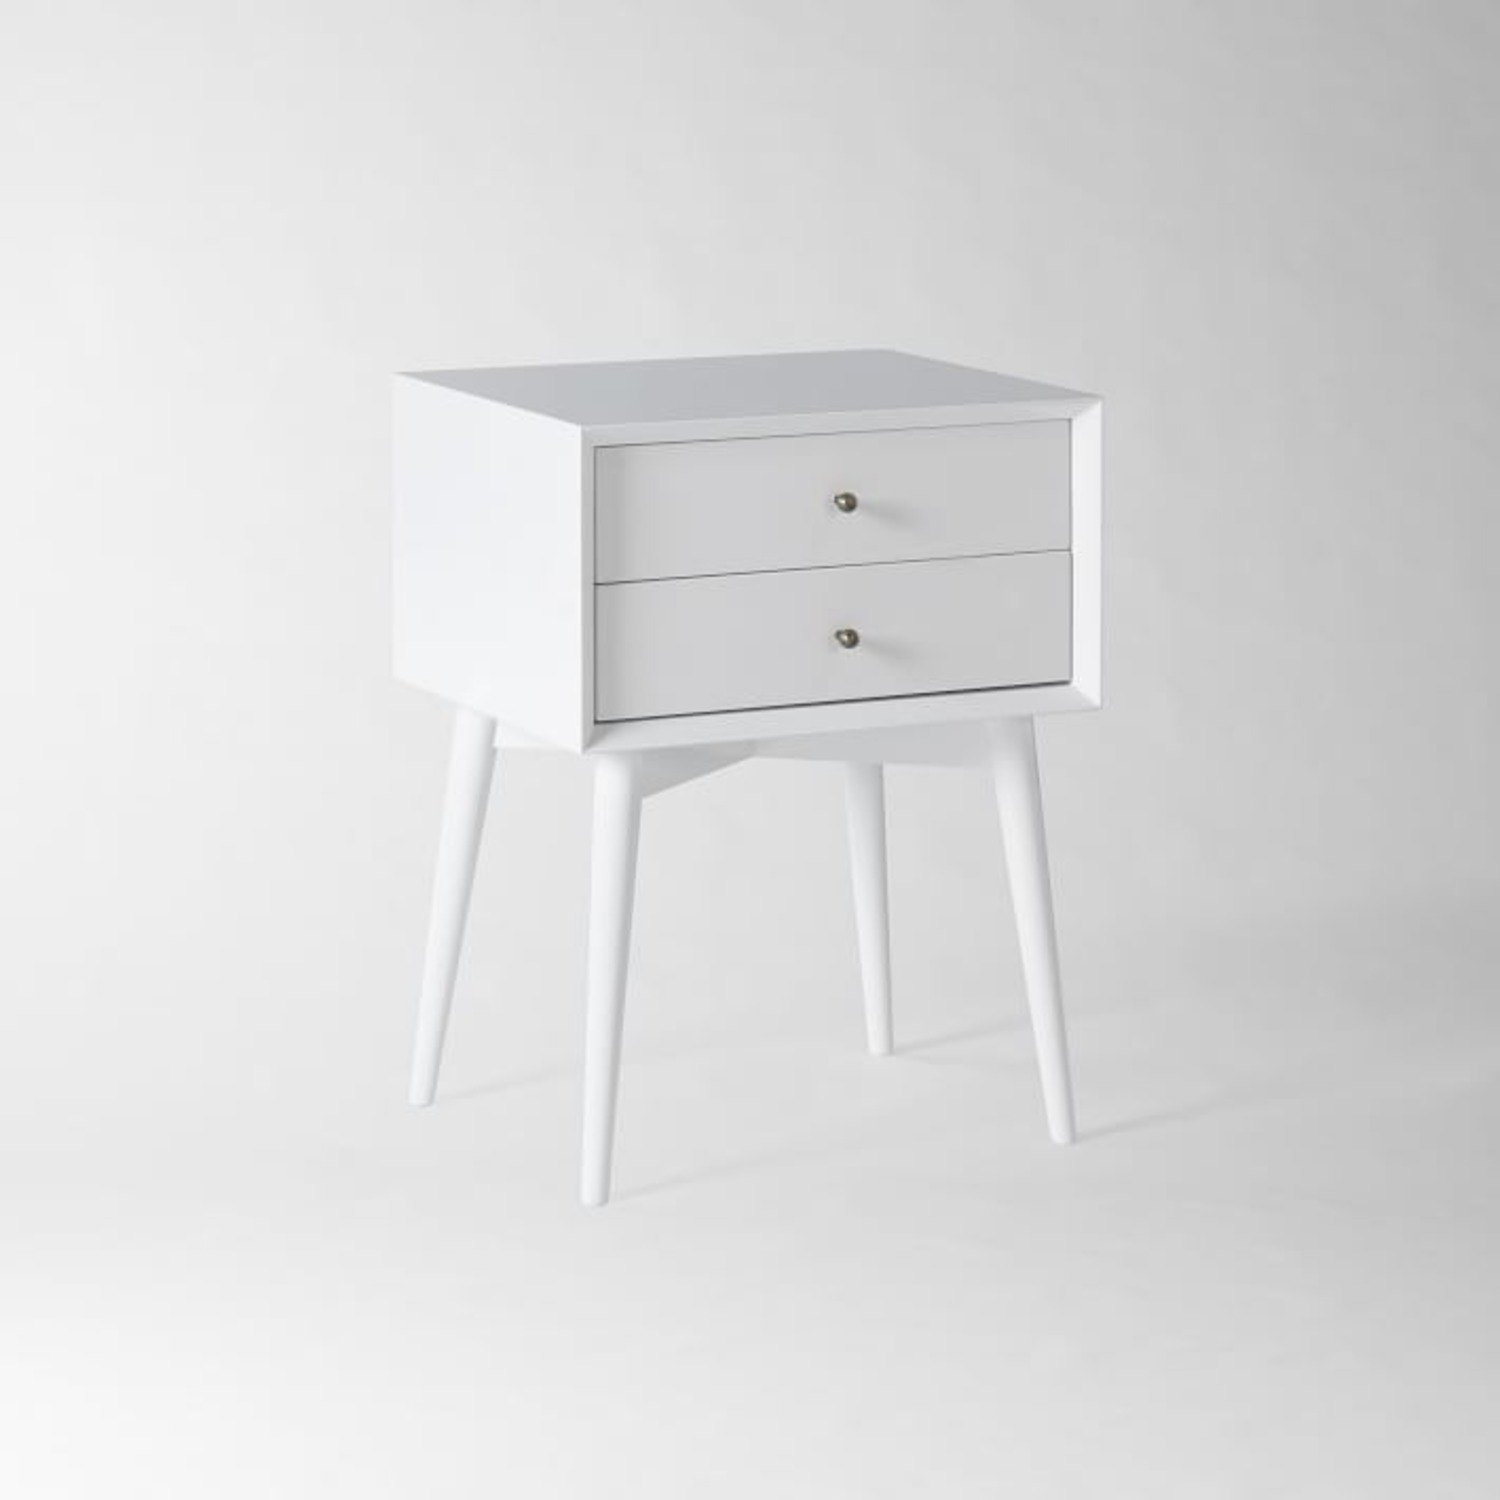 West Elm Mid-Century Nightstand, White Lacquer - image-1